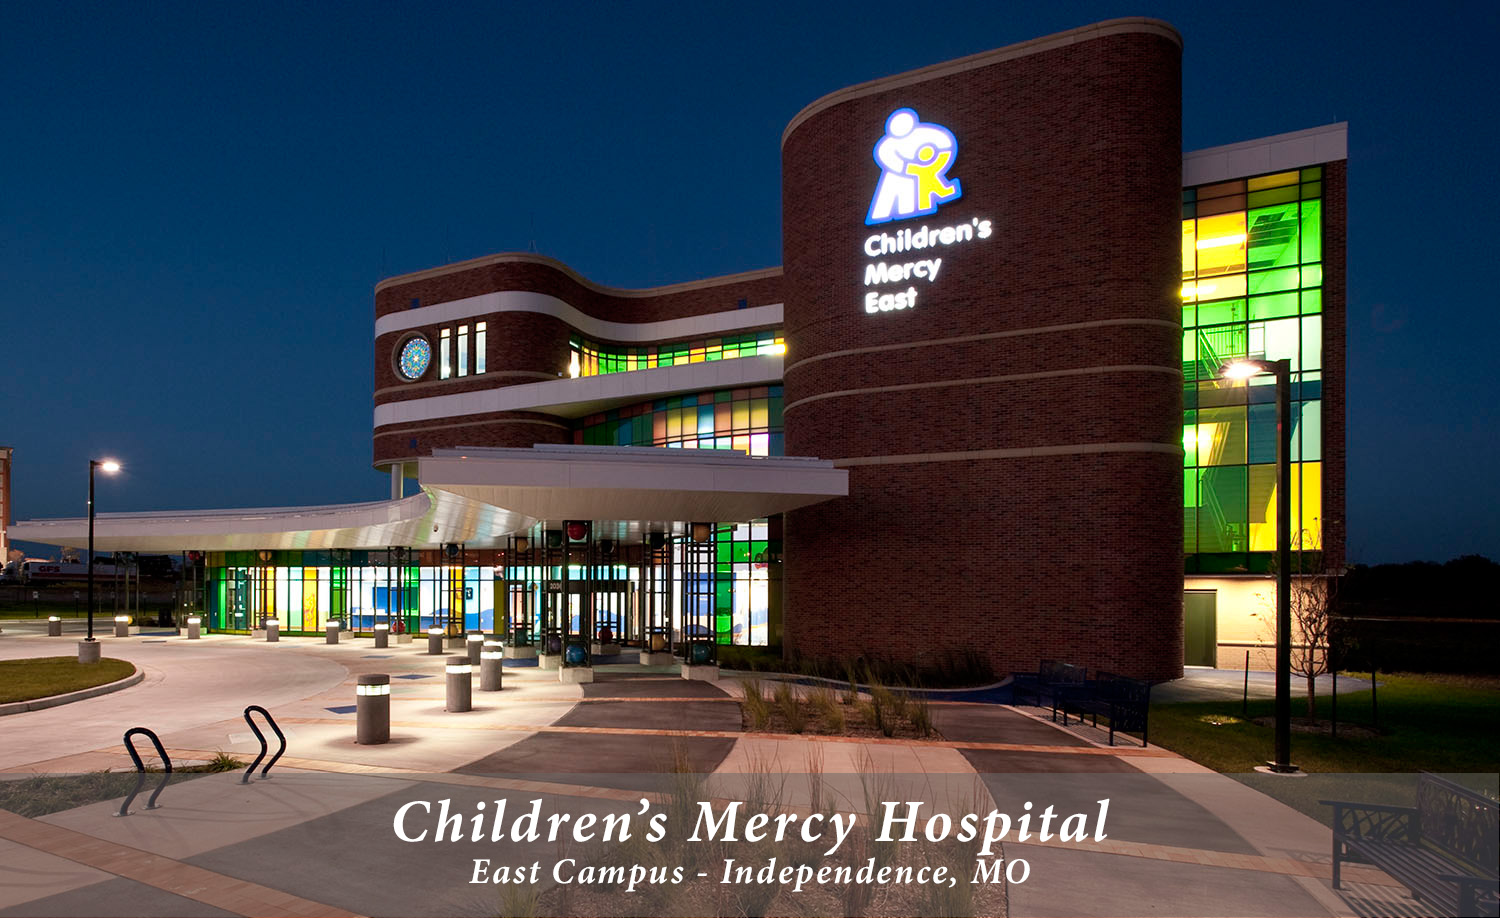 Children's-Mercy-Hospital-East-Campus-with-Text.jpg